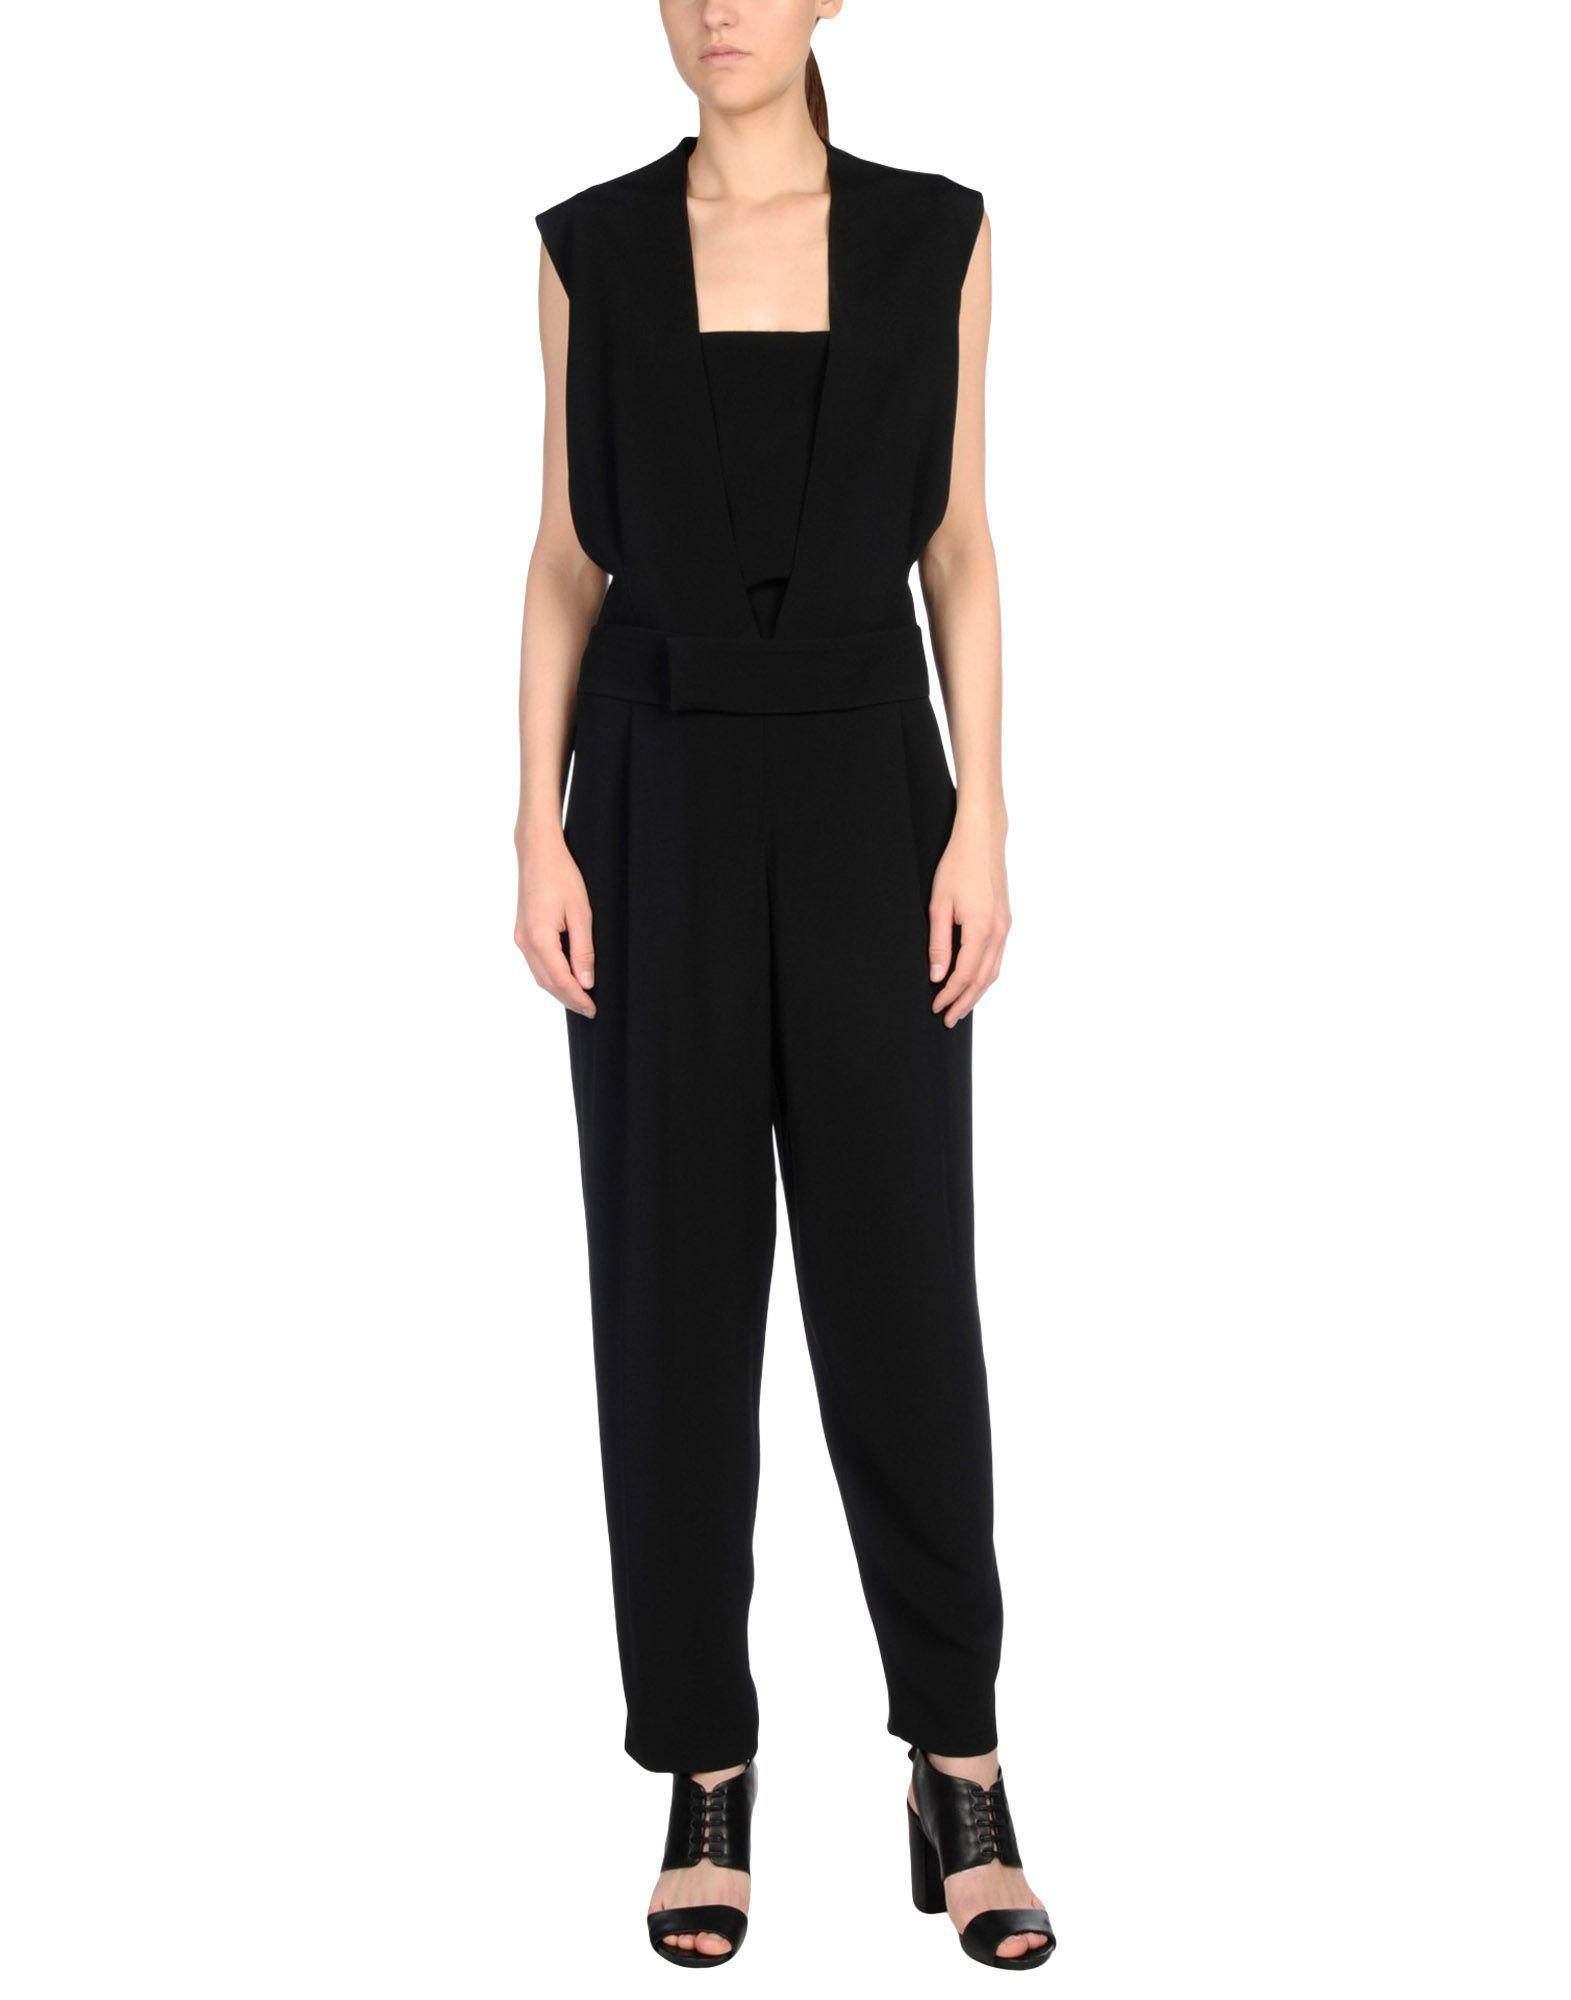 DUNGAREES - Jumpsuits Veronique Leroy Outlet Shop For Discount Sale Online With Mastercard For Sale ASJfE